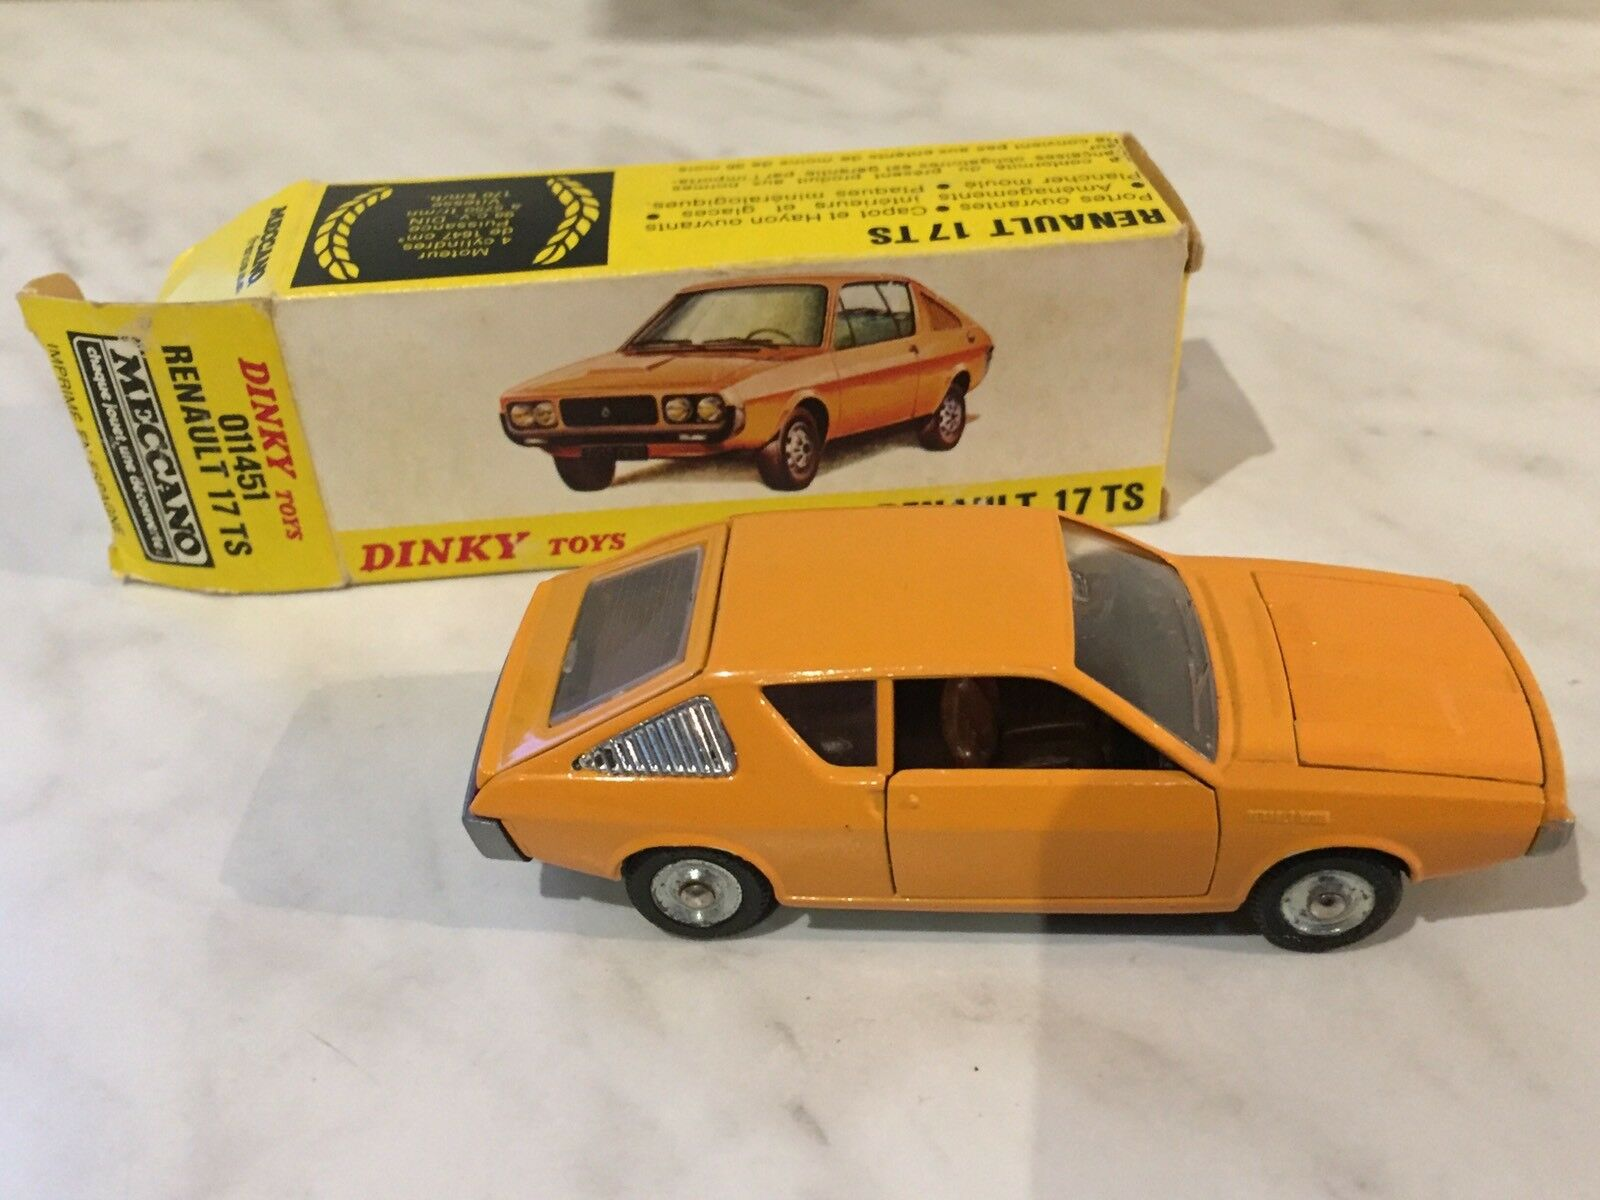 Dinky Toys F n° 1451 Renault R17 TS en boite 1 43 Made in Spain